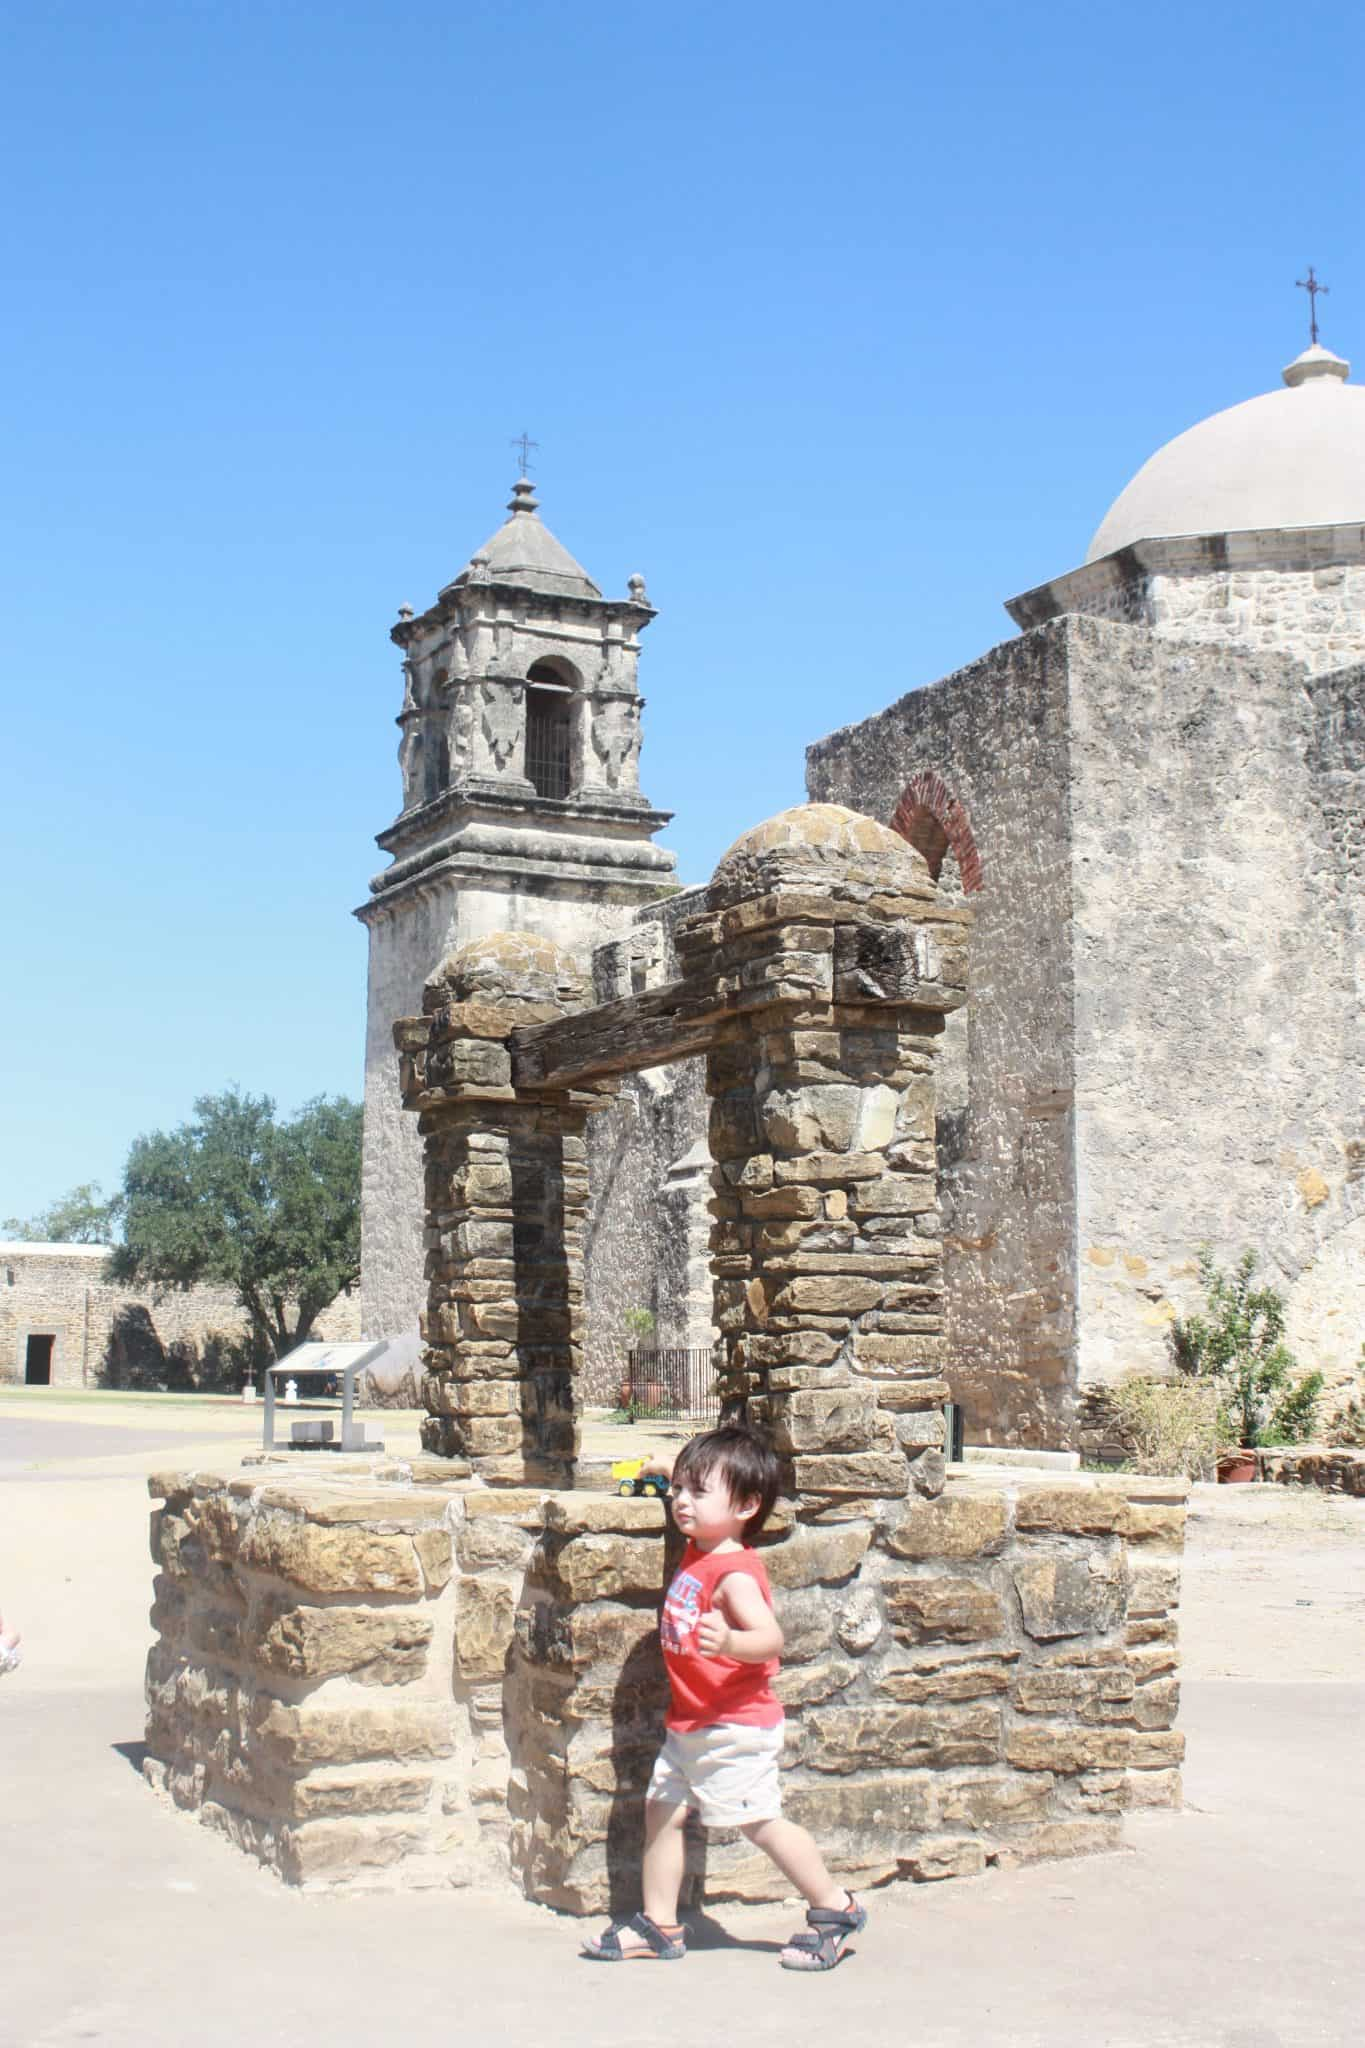 San Antonio Mission in TX